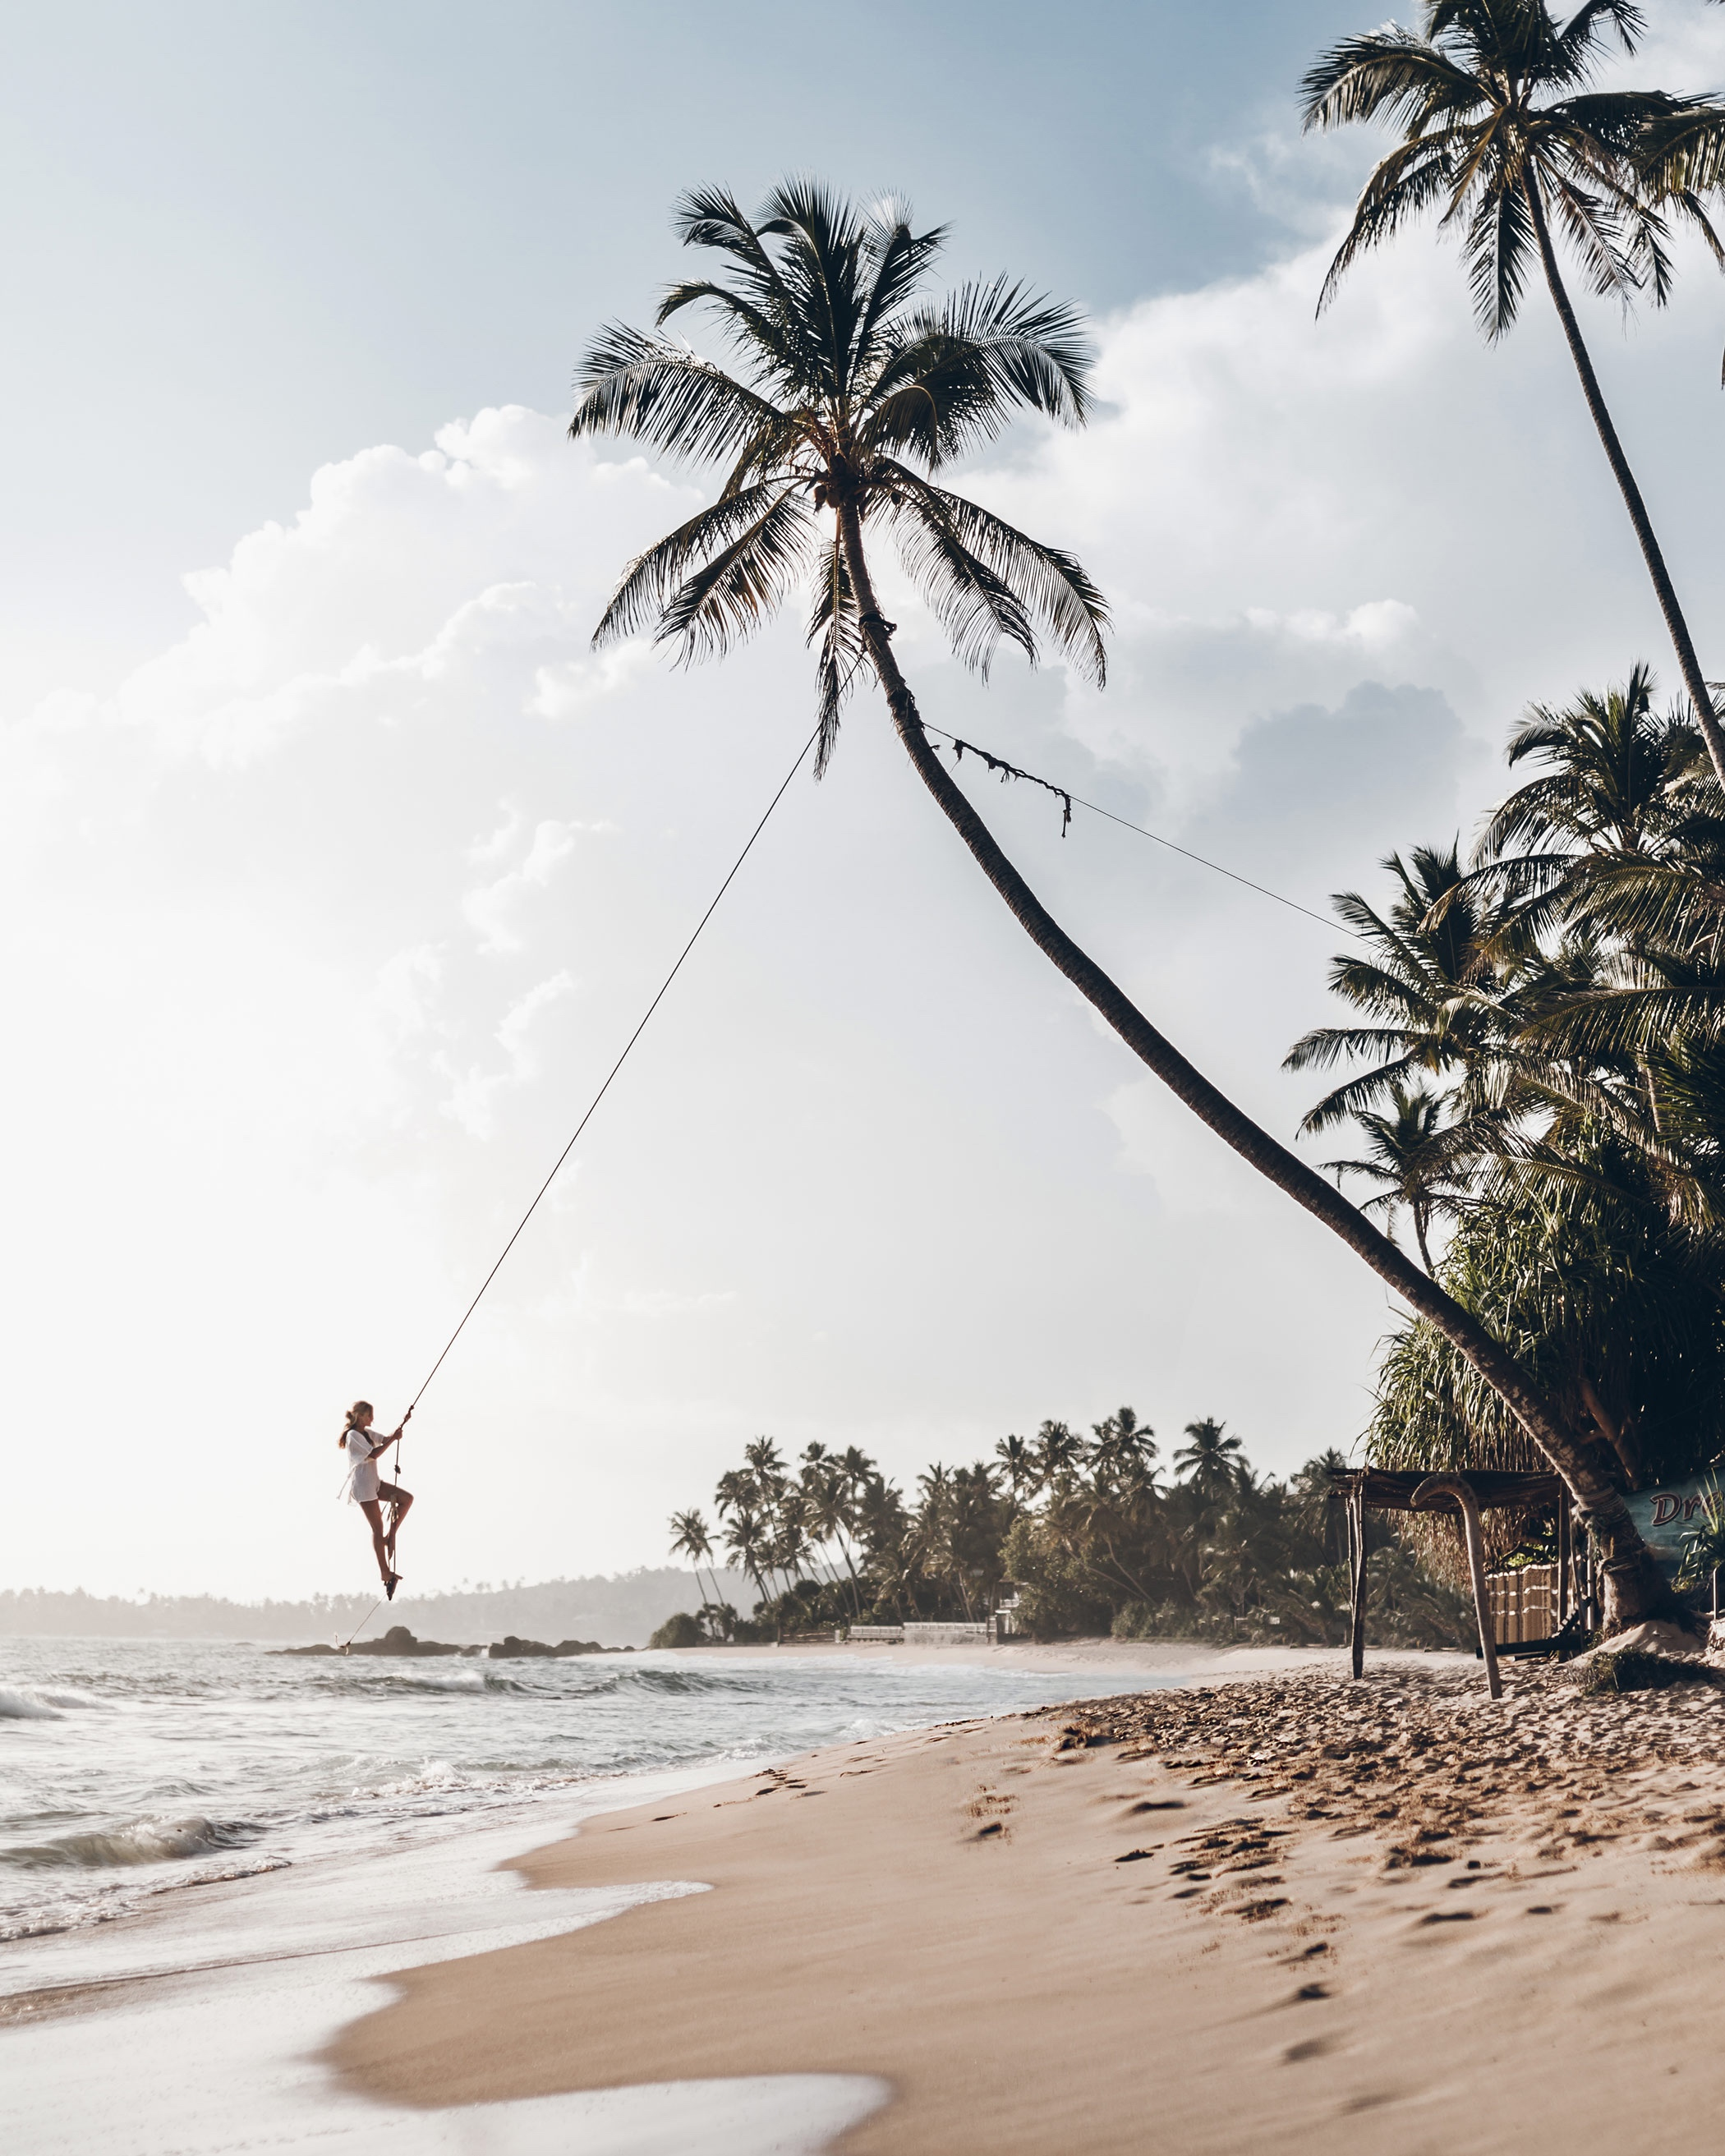 sri lanka dalawella beach swing